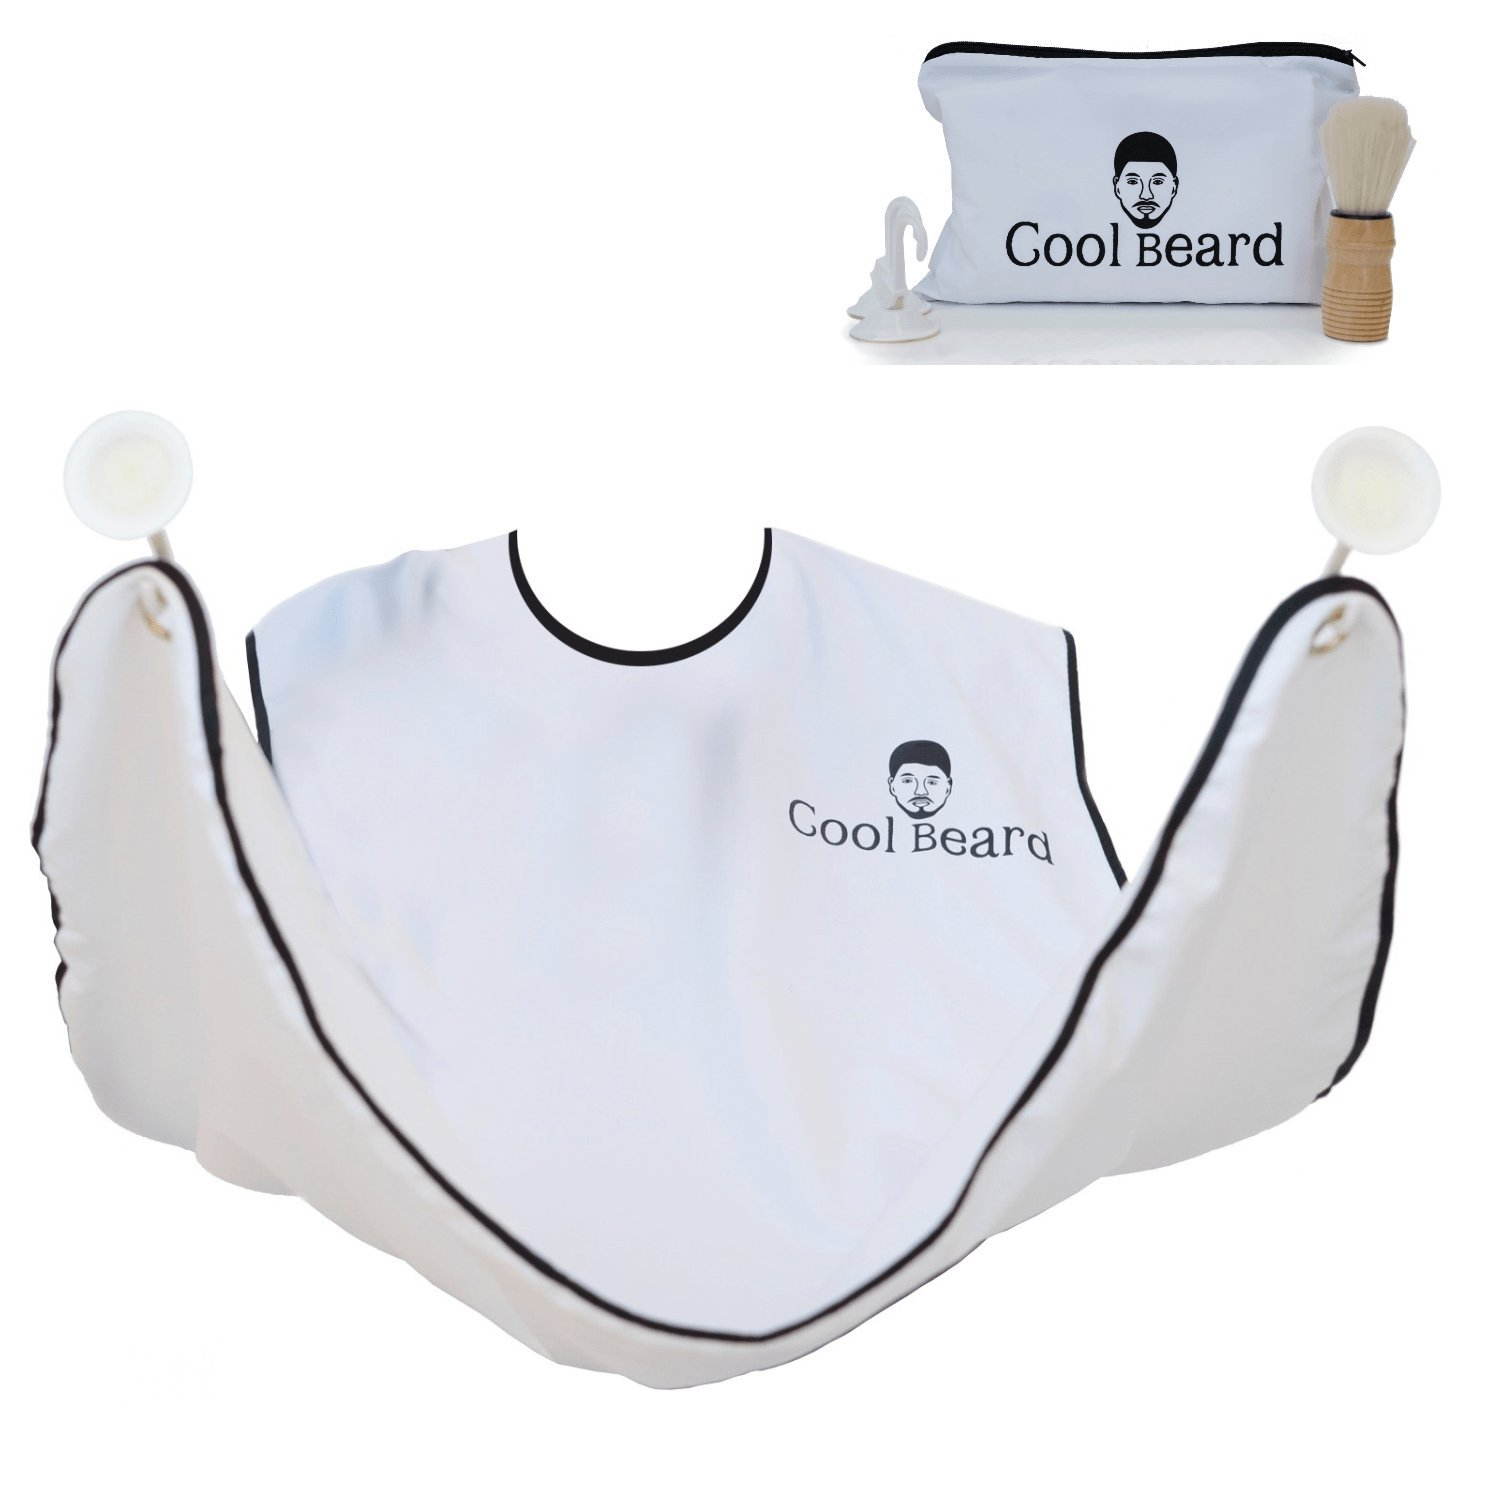 Beard Bib Apron Set- Shaving Cape Kit With Brush , Travel Pouch and Suction Cups Catching All Trimming Hair For Men cool beard